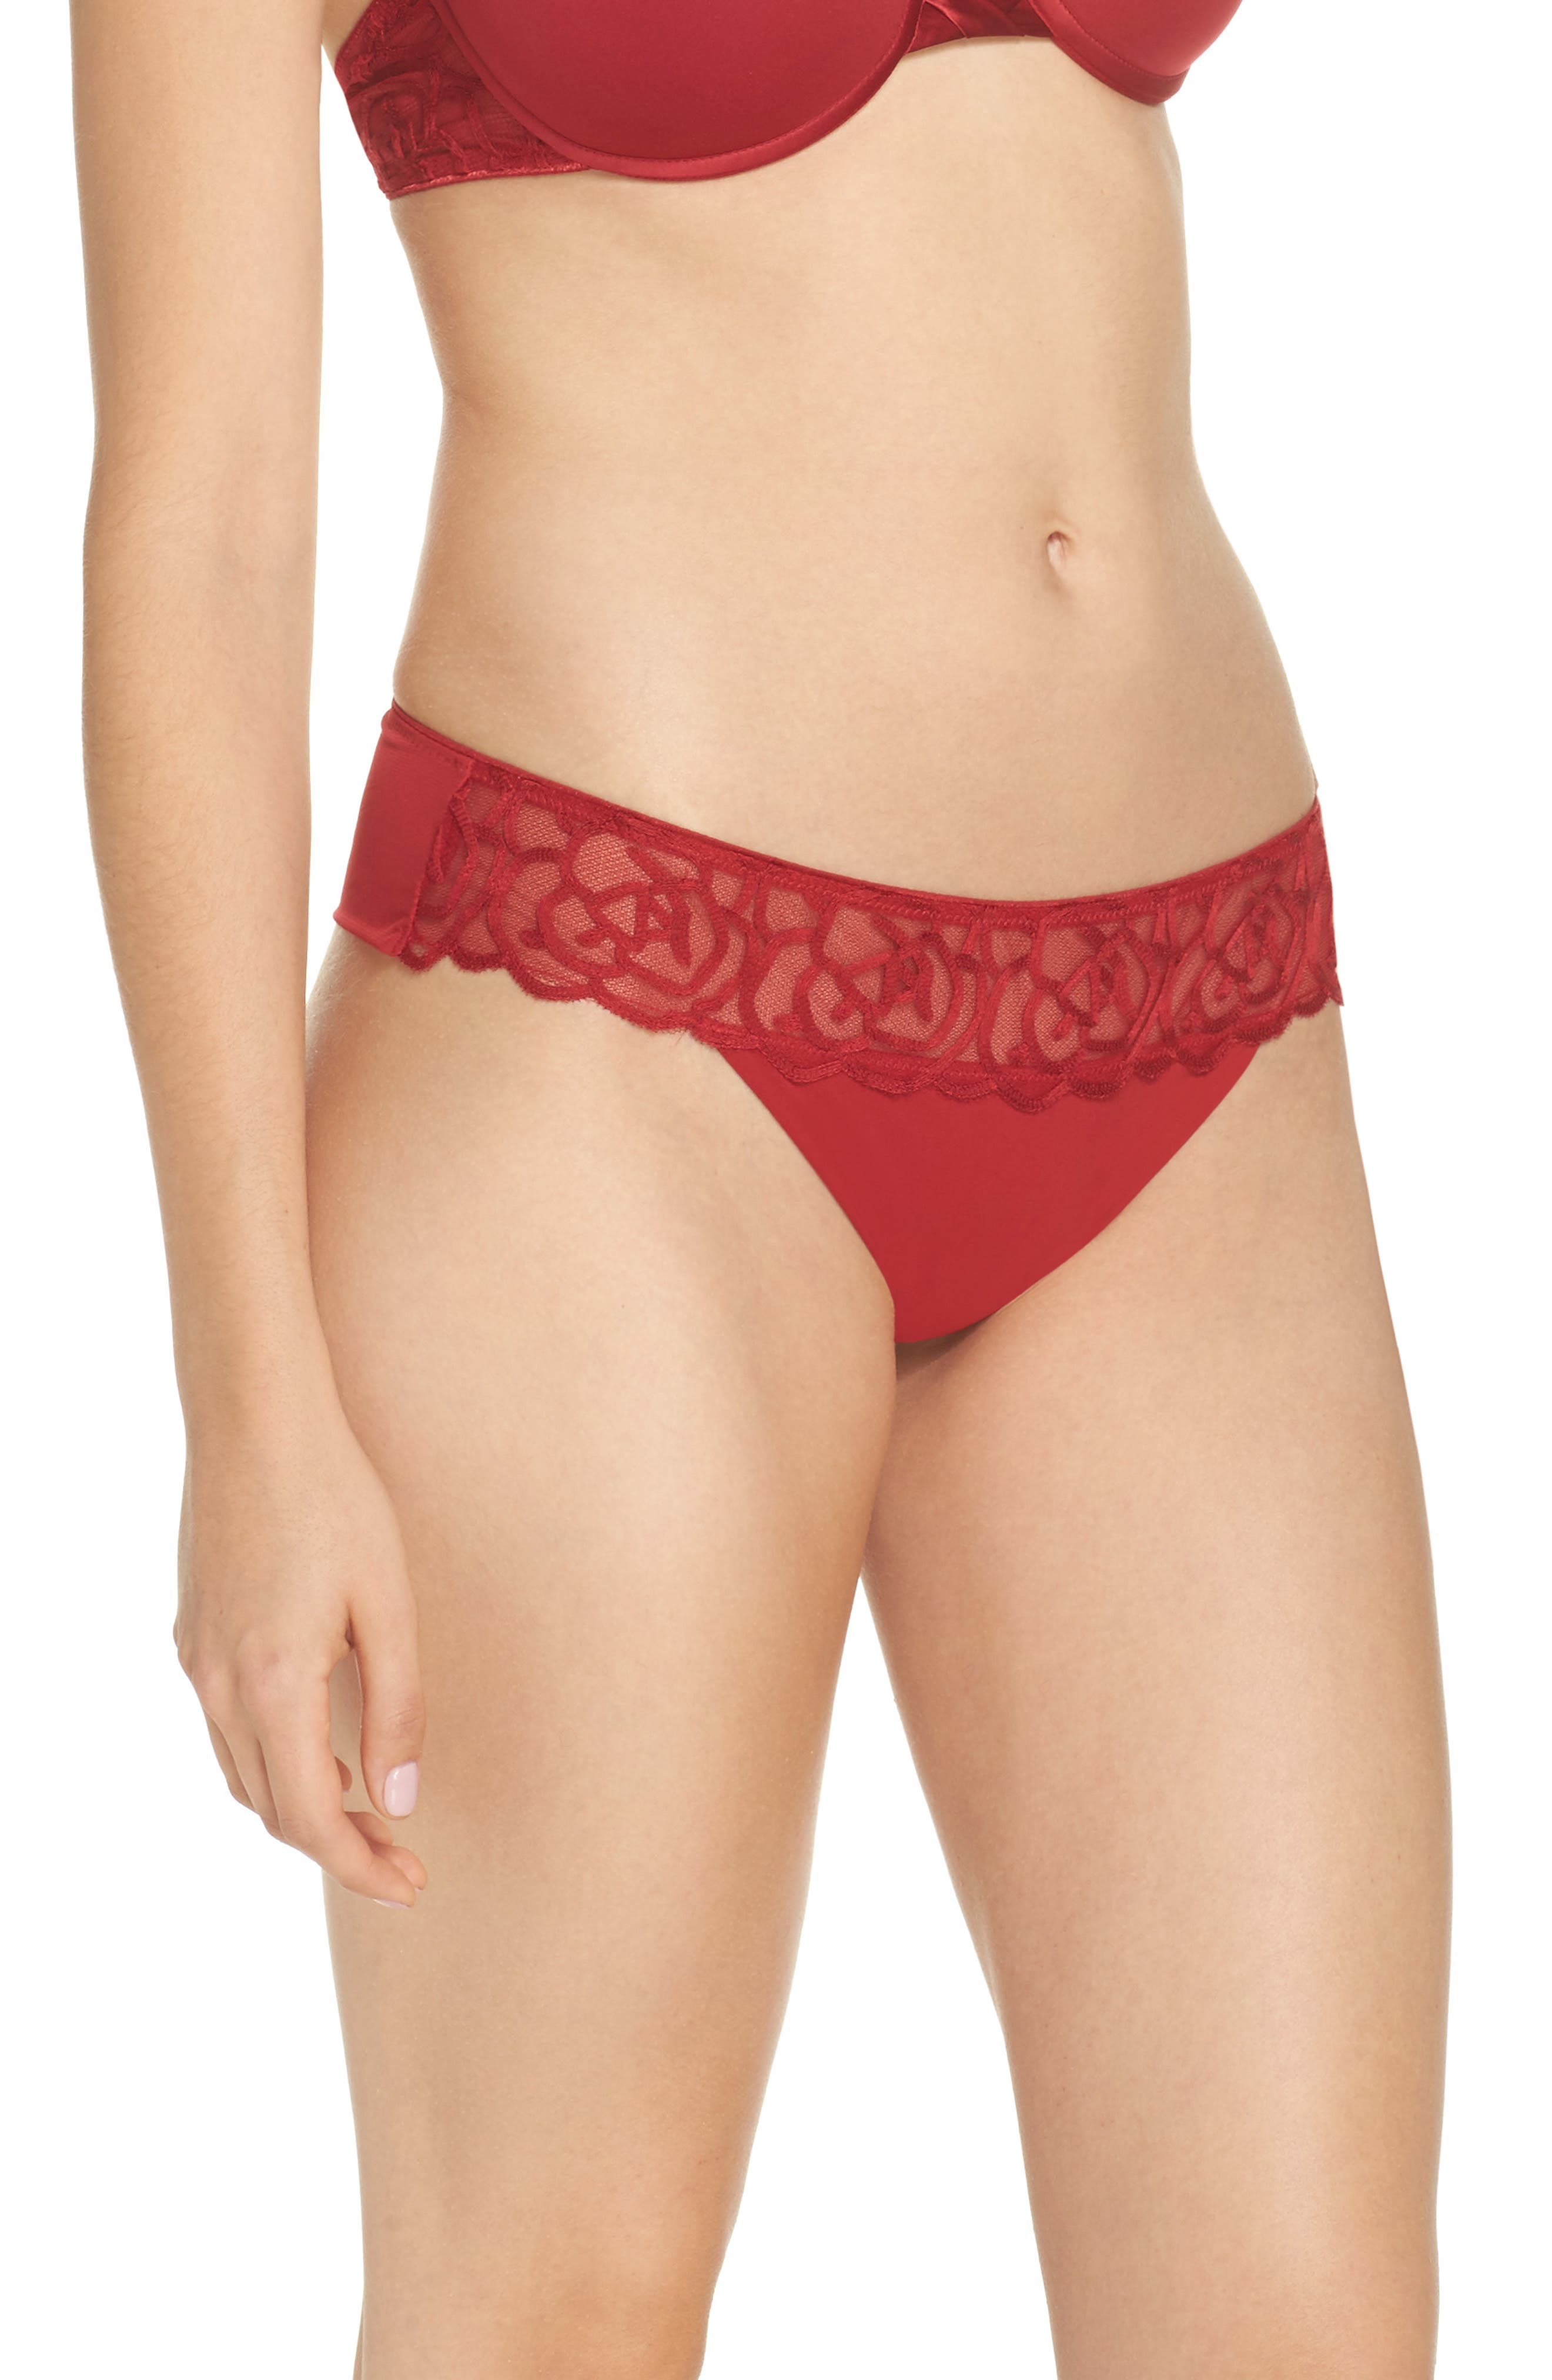 Chantelle Luxembourg Thong,                             Alternate thumbnail 3, color,                             Candy Apple